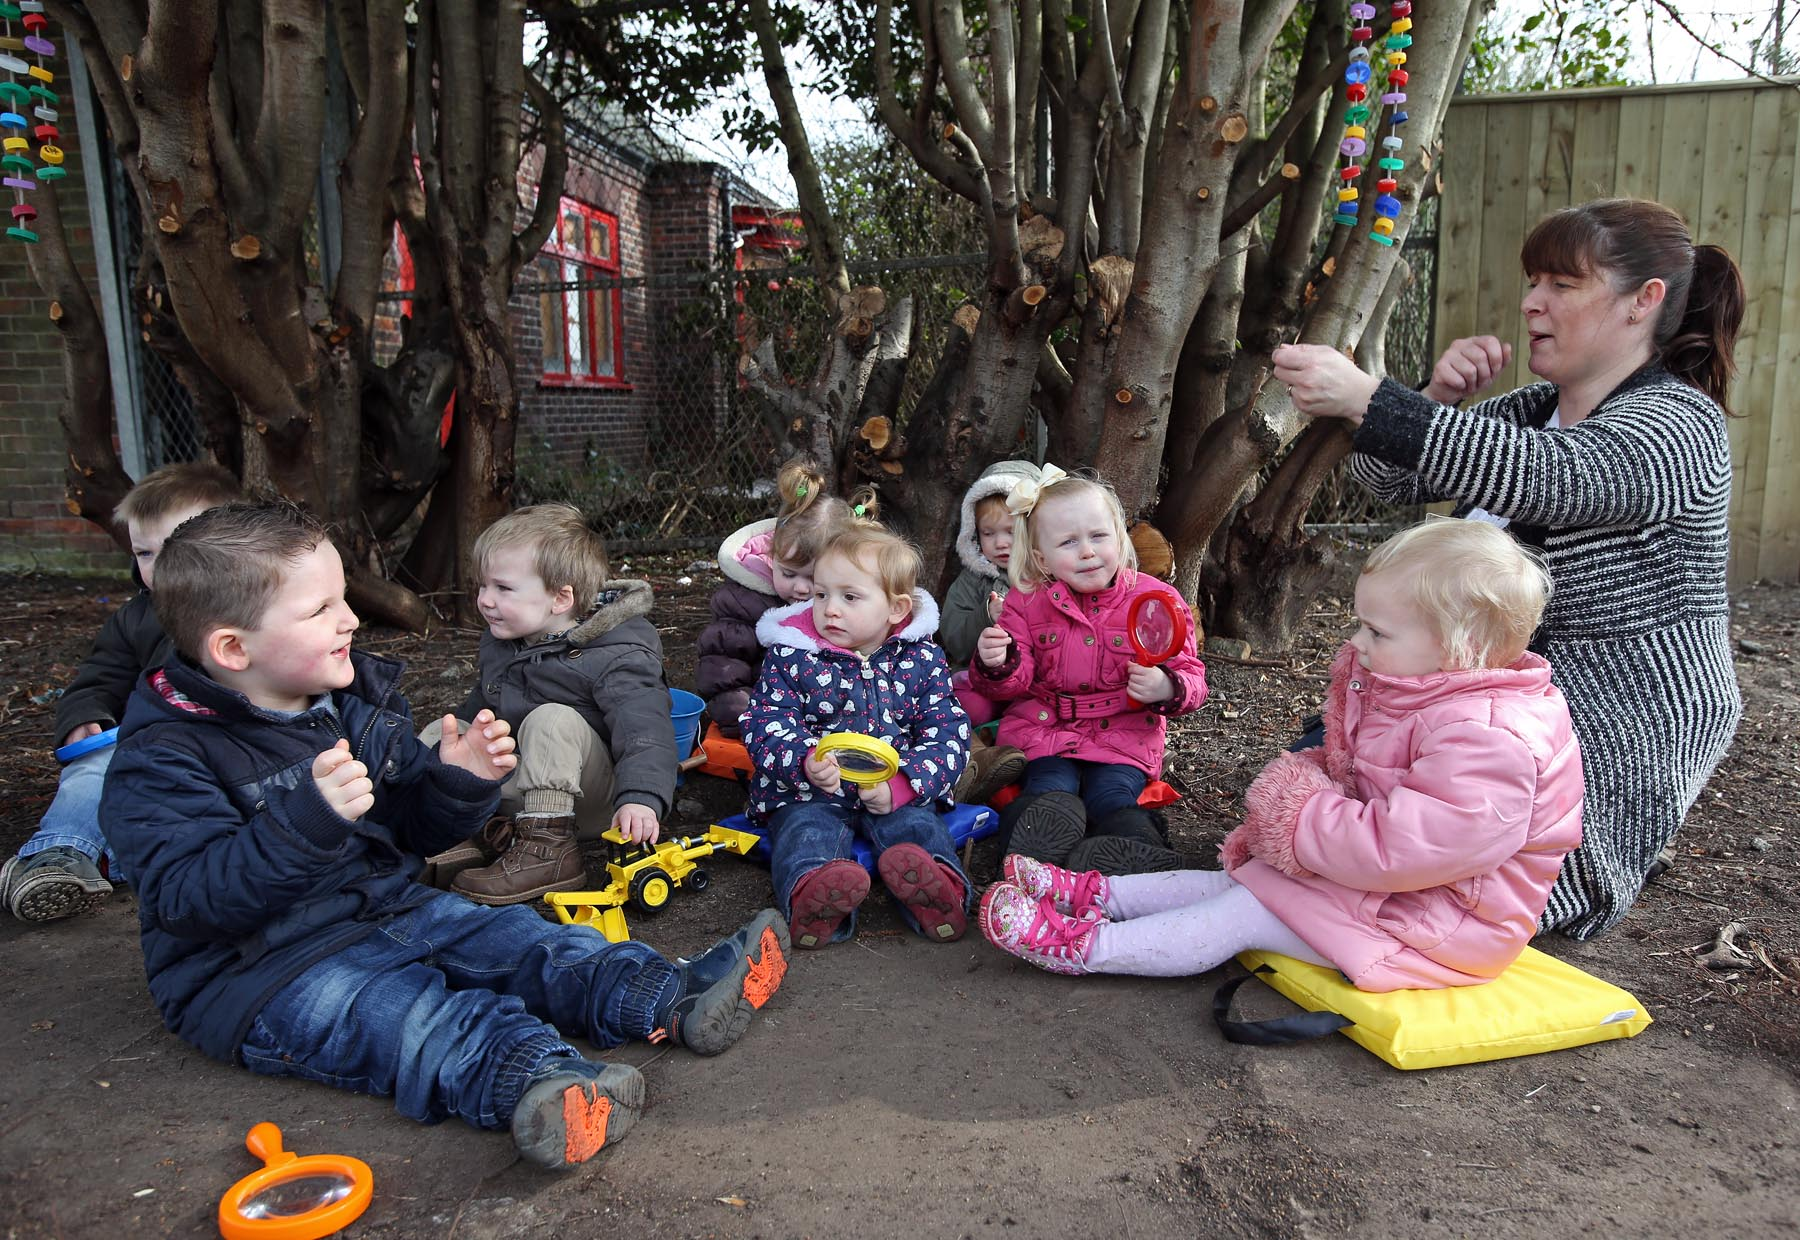 Youngsters devastated after vandals trash newly-opened playgroup garden